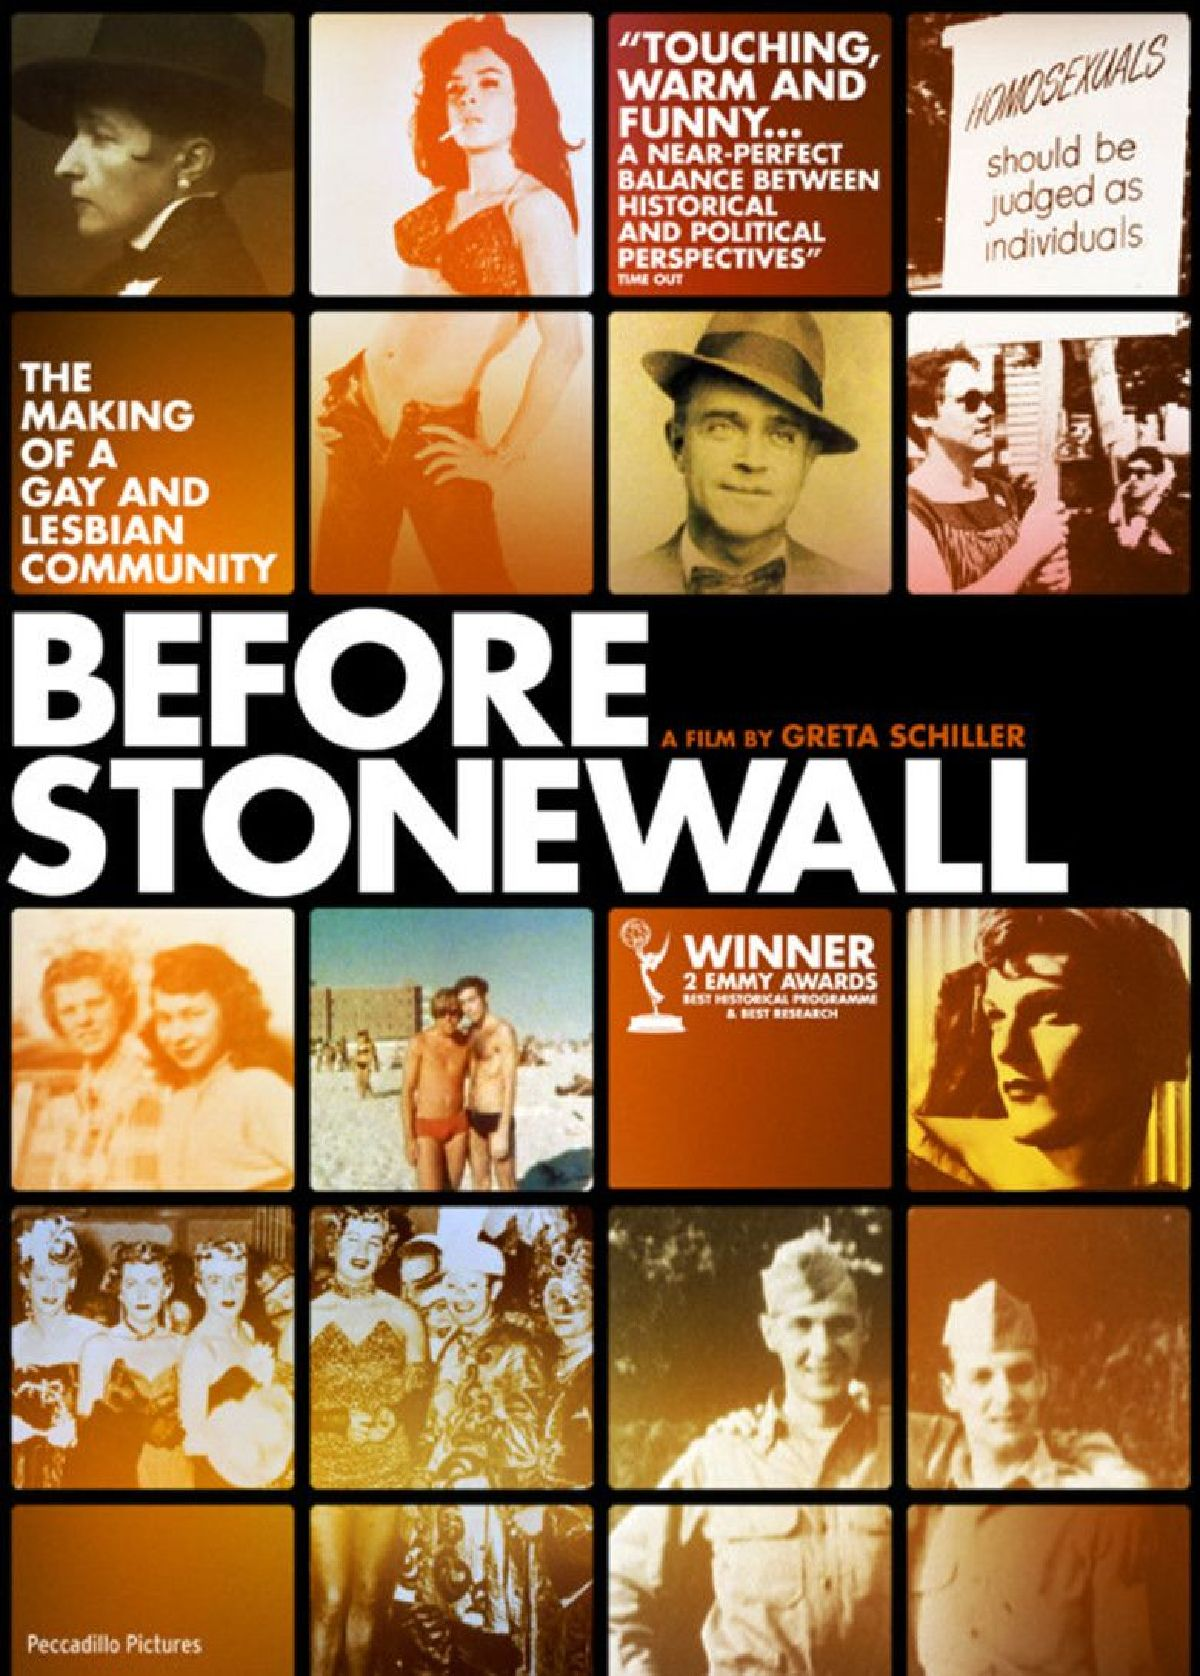 'Before Stonewall' movie poster